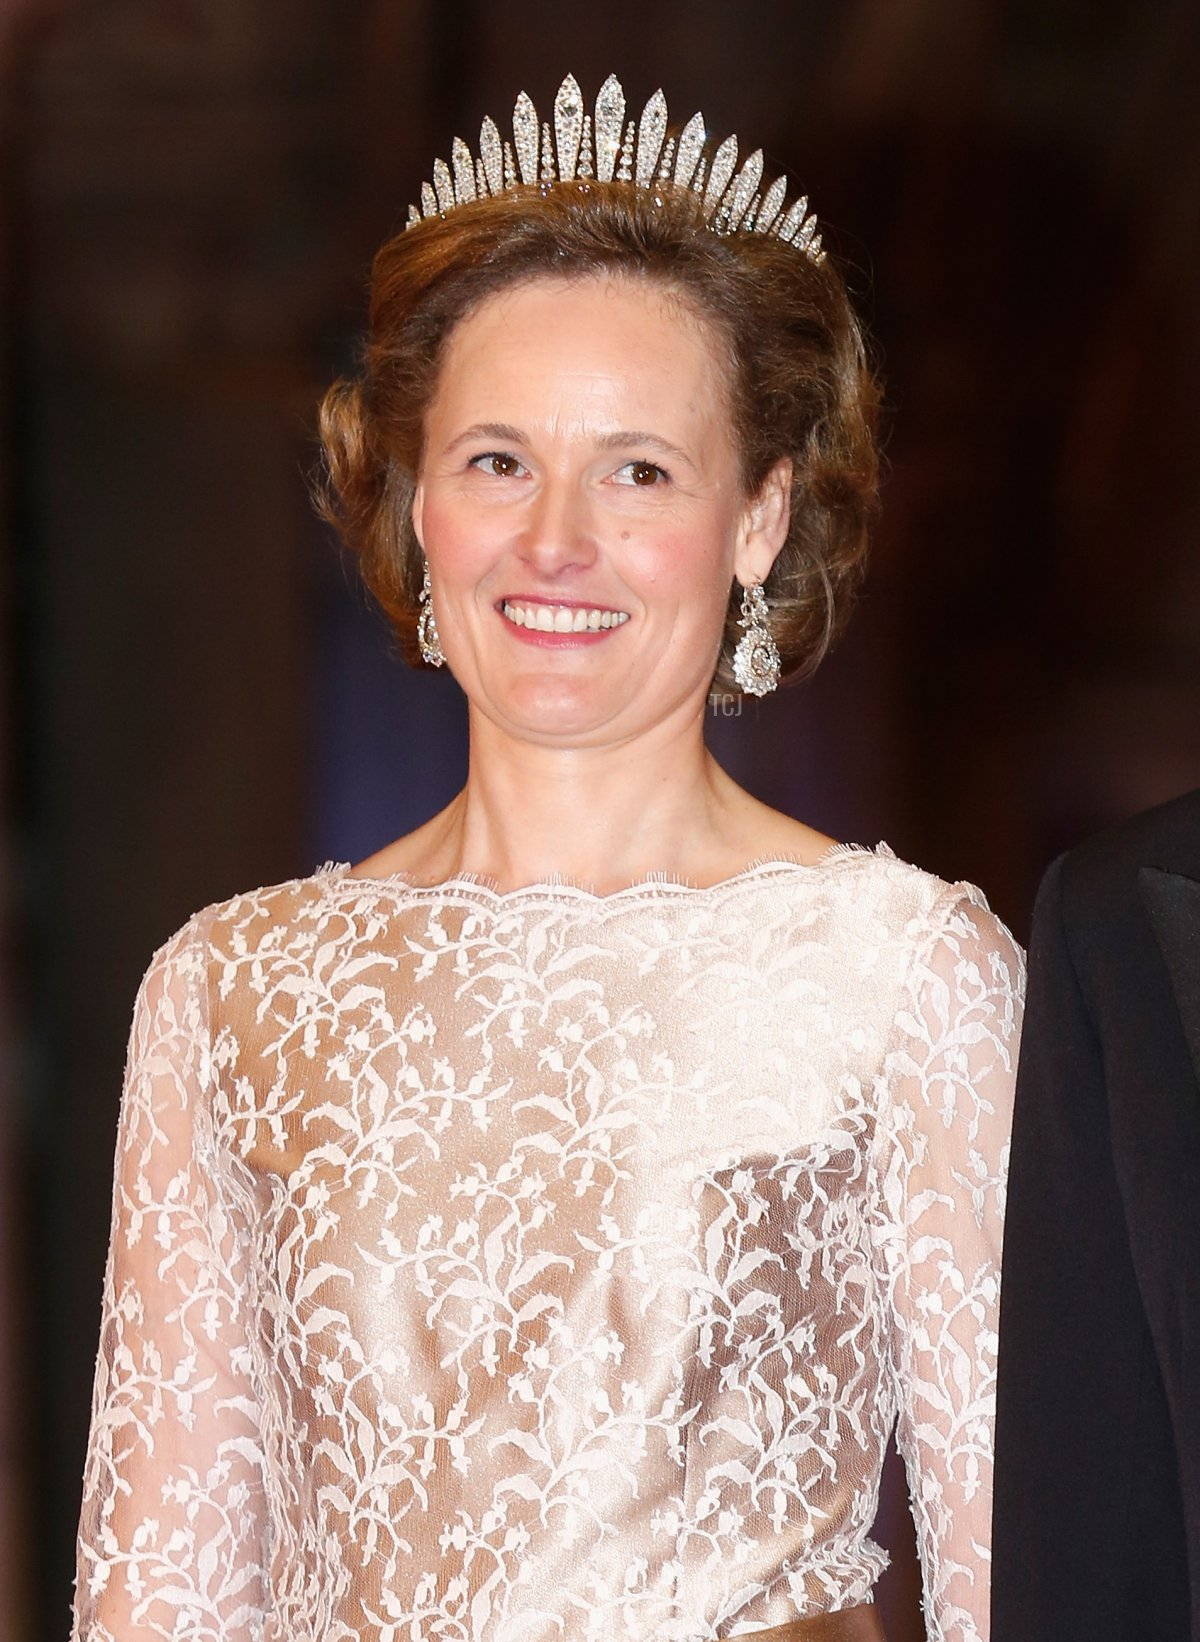 Hereditary Prince Alois and Hereditary Princess Sophie of Liechtenstein arrive on April 29, 2013 to attend a dinner at the National Museum (Rijksmuseum) in Amsterdam hosted by Queen Beatrix of the Netherlands on the eve of her abdication